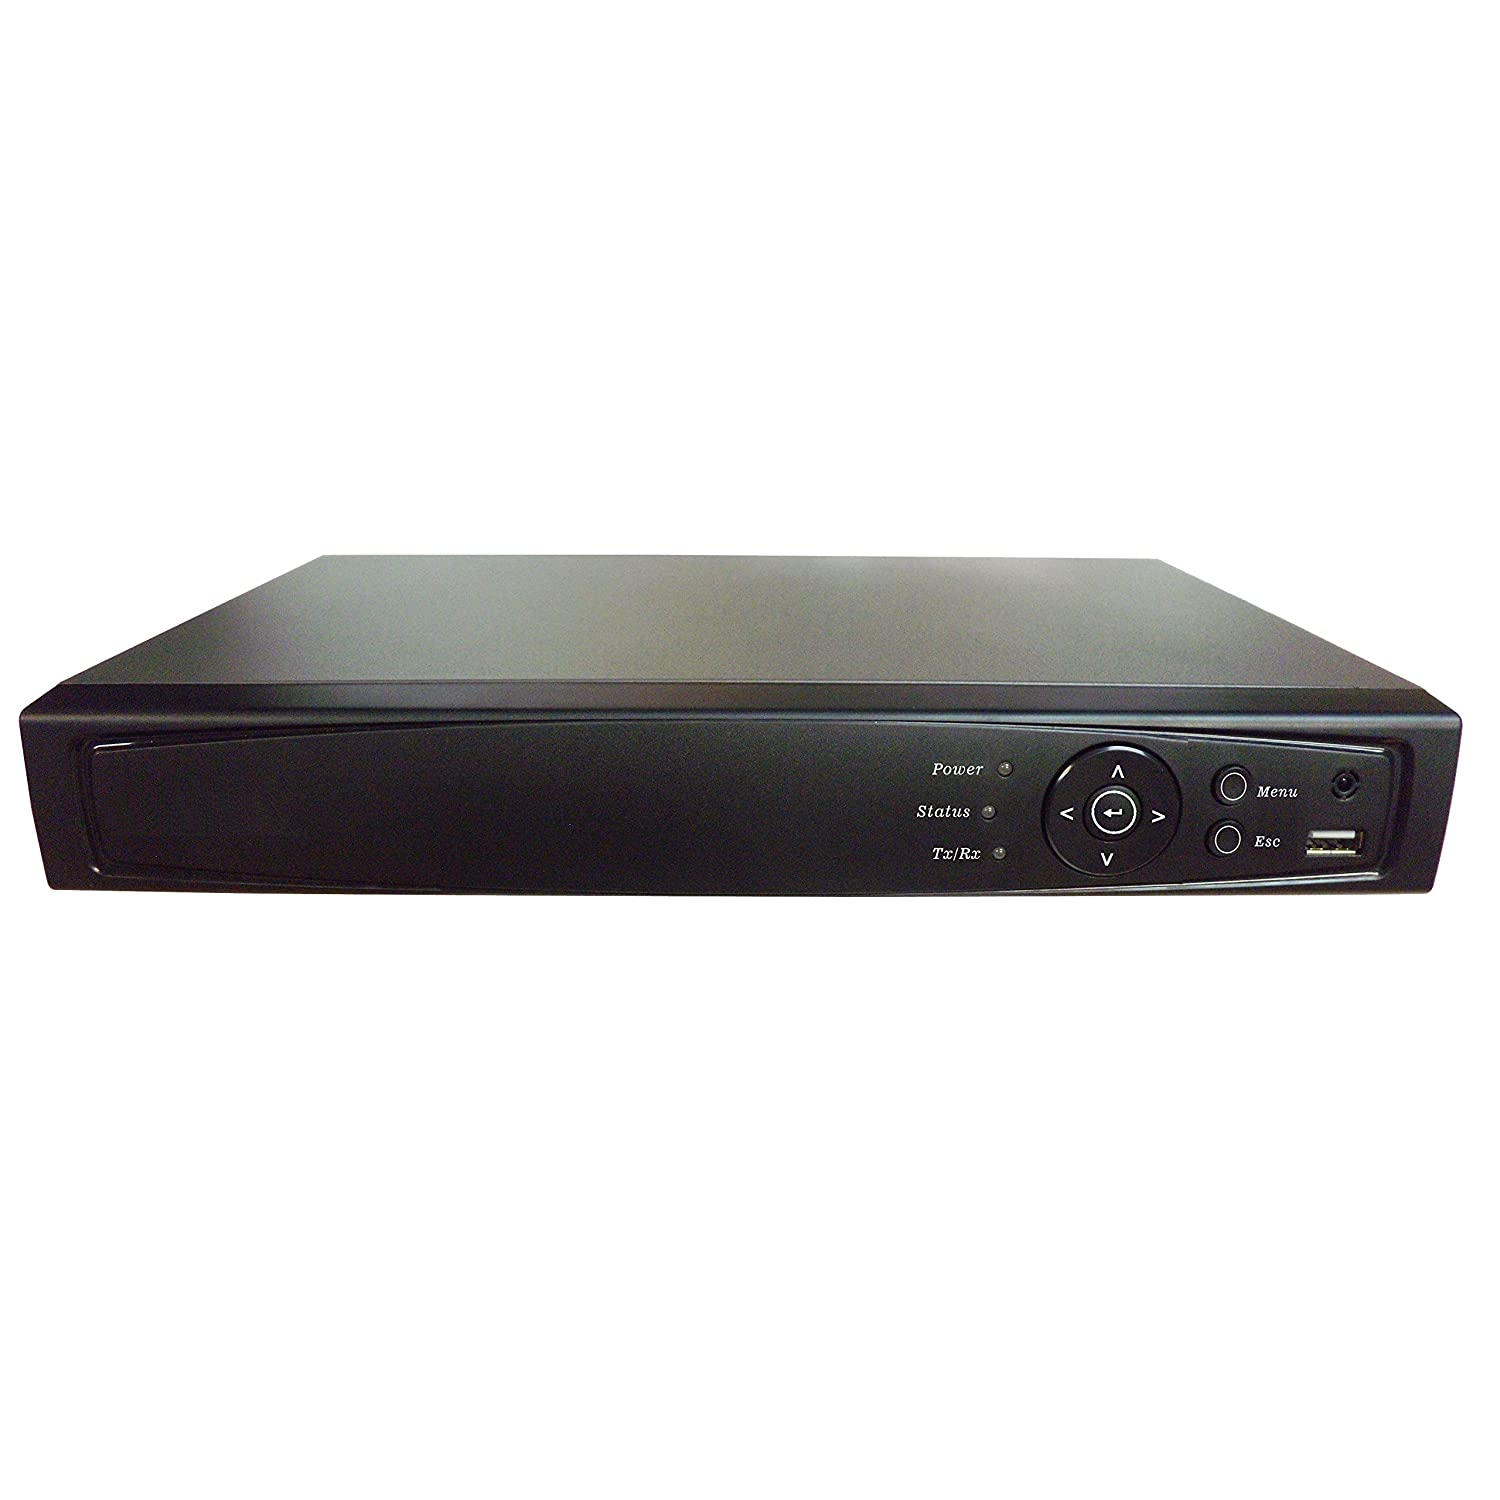 Amazon.com : Surveillance Digital Video Recorder 16CH HD-TVI/CVI/AHD H264 Full-HD DVR w/o HDD HDMI/VGA/BNC Video Output Cell Phone APPs for Home/Office Work ...